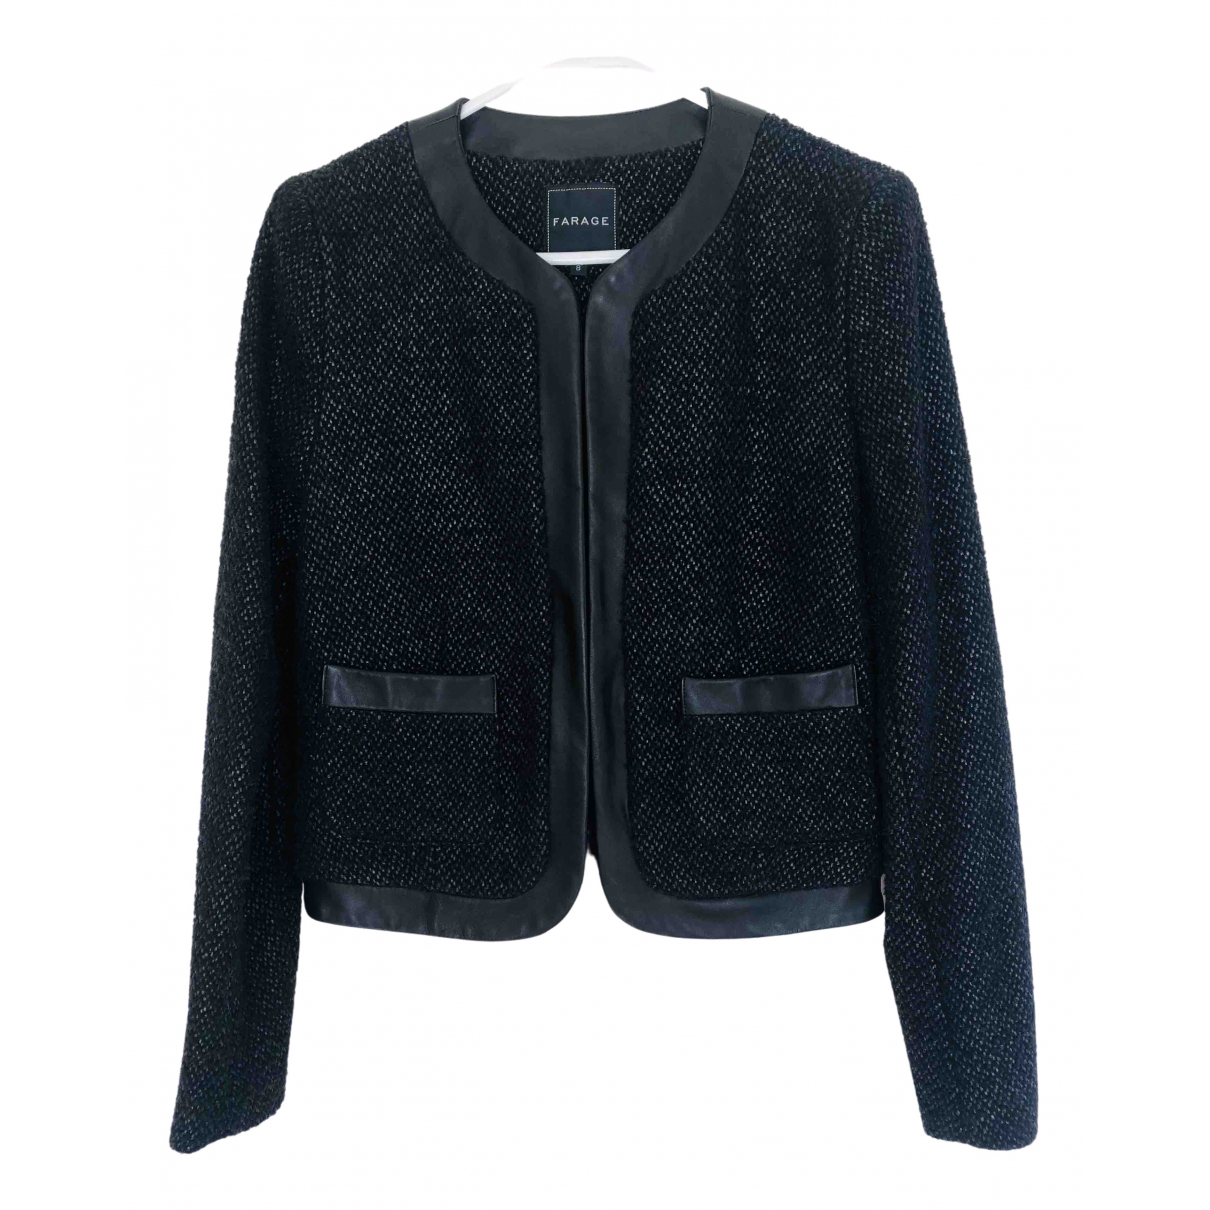 Non Signé / Unsigned \N Black Tweed jacket for Women S International